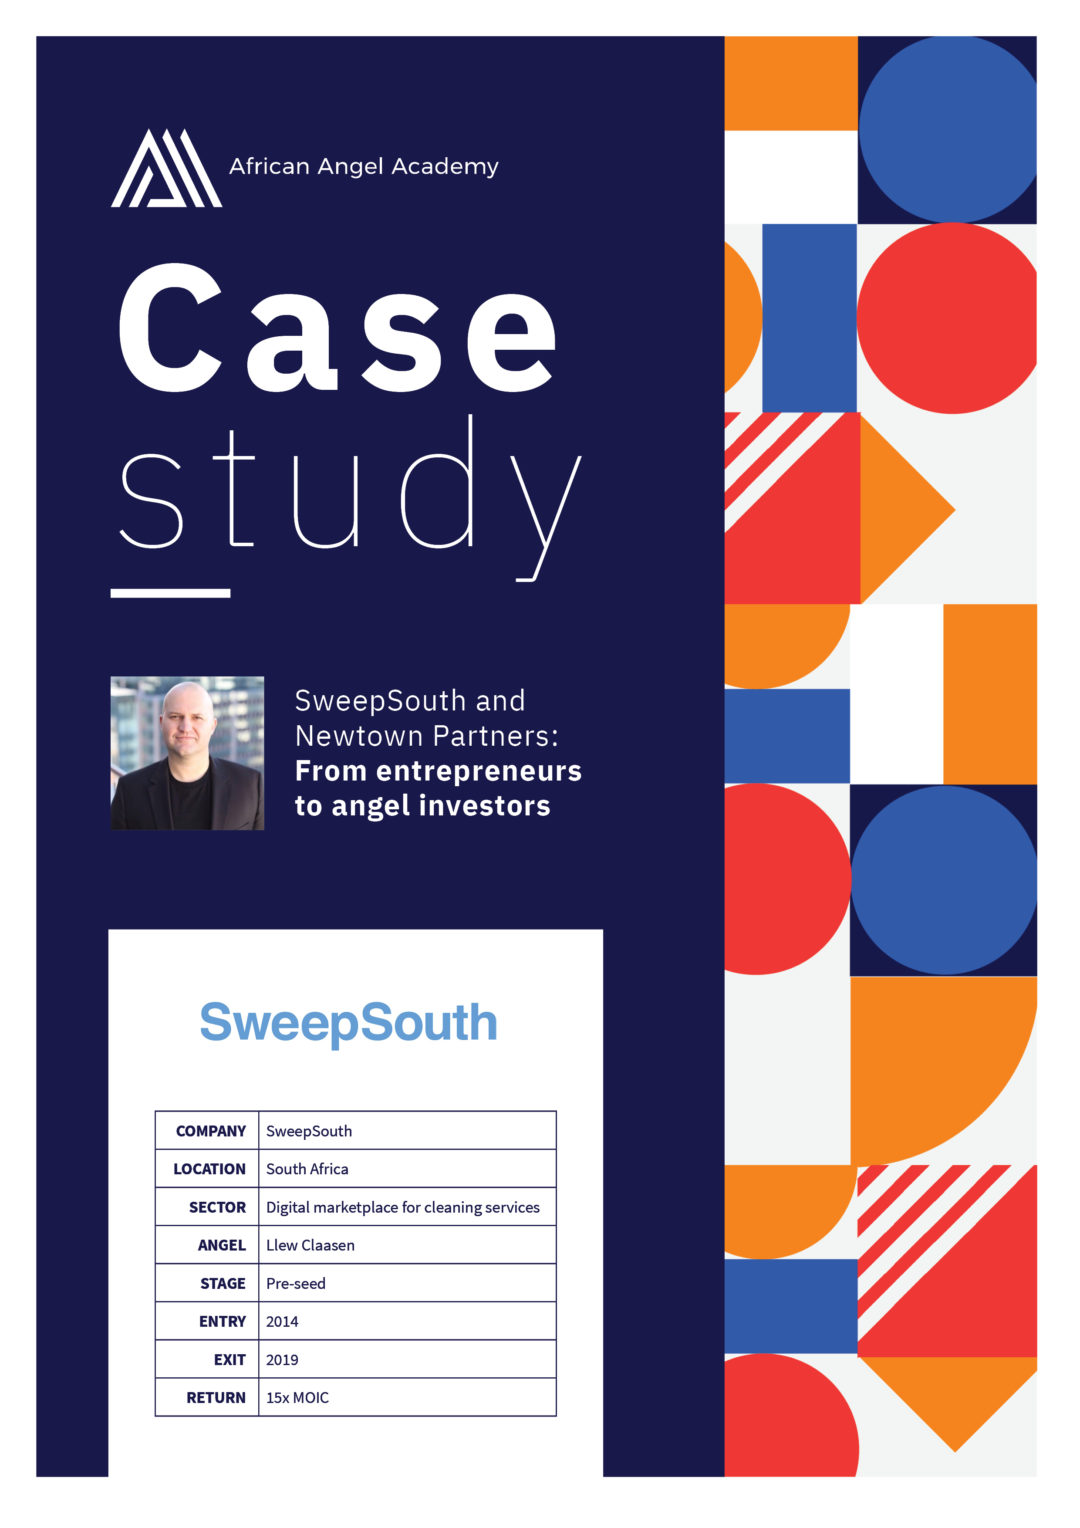 SweepSouth and Newtown Partners: From entrepreneurs to angel investors